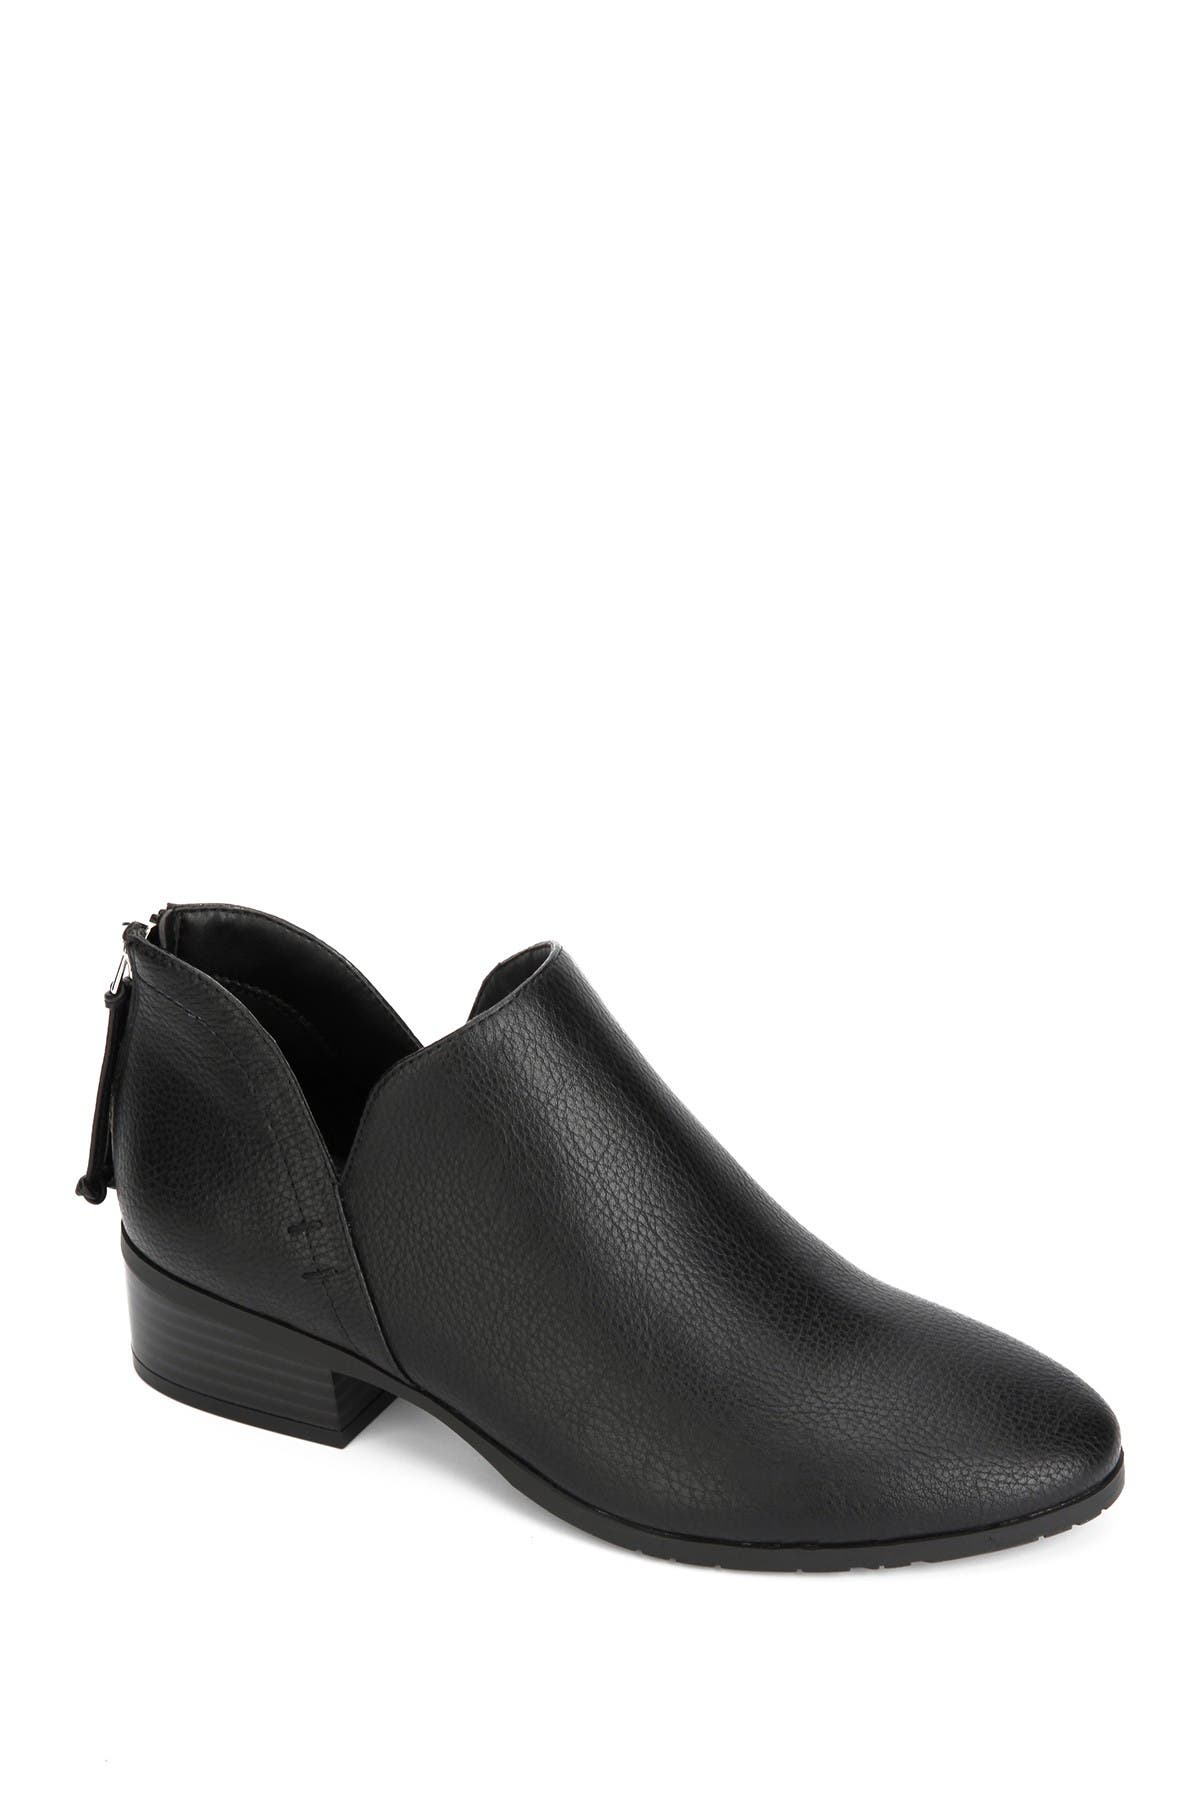 Image of Kenneth Cole Reaction Side Skip Chelsea Boot